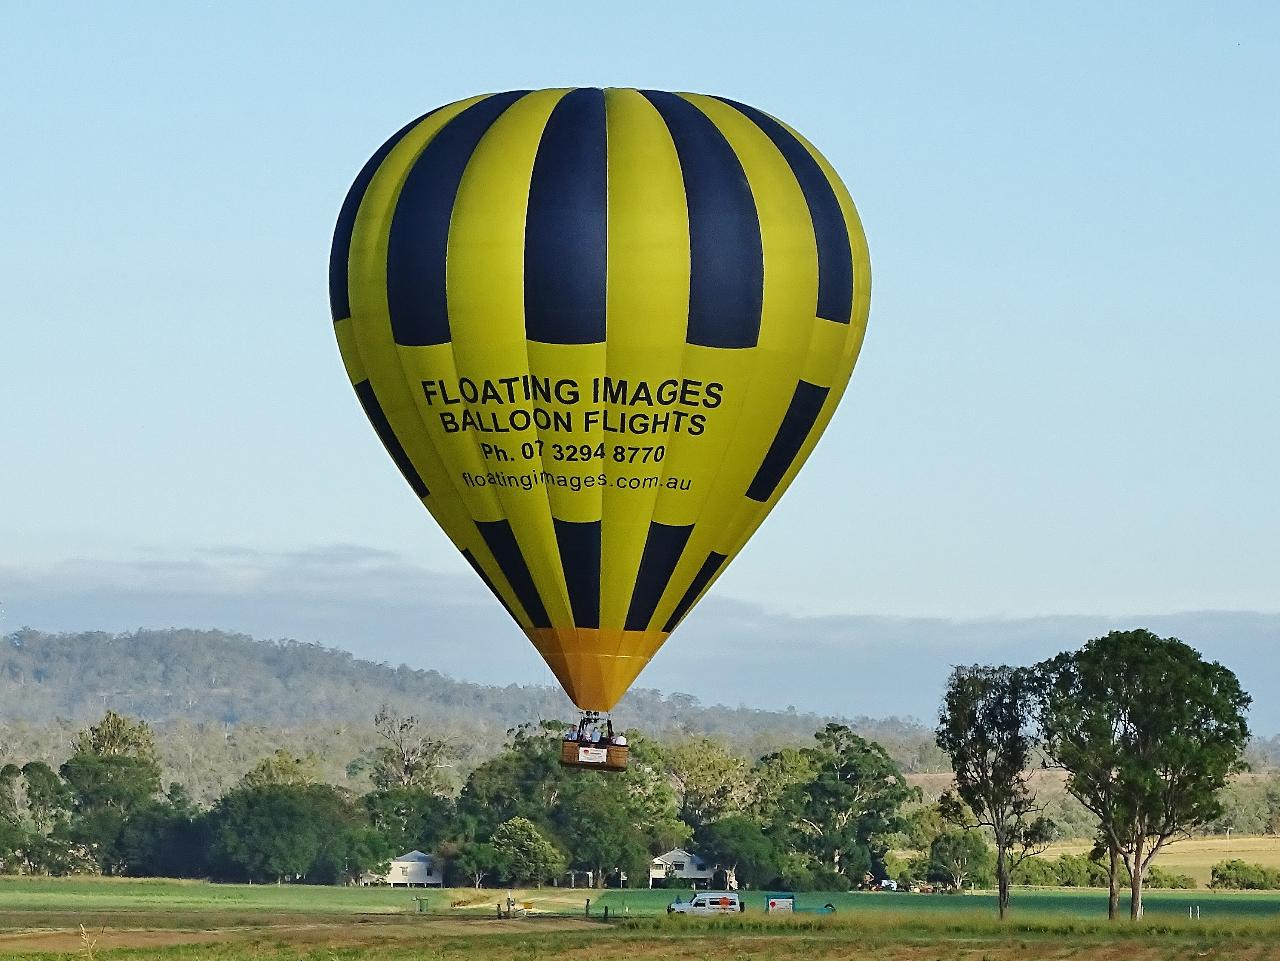 7. REGIONAL CHARTER FLOATING IMAGES HOT AIR BALLOON FLIGHTS